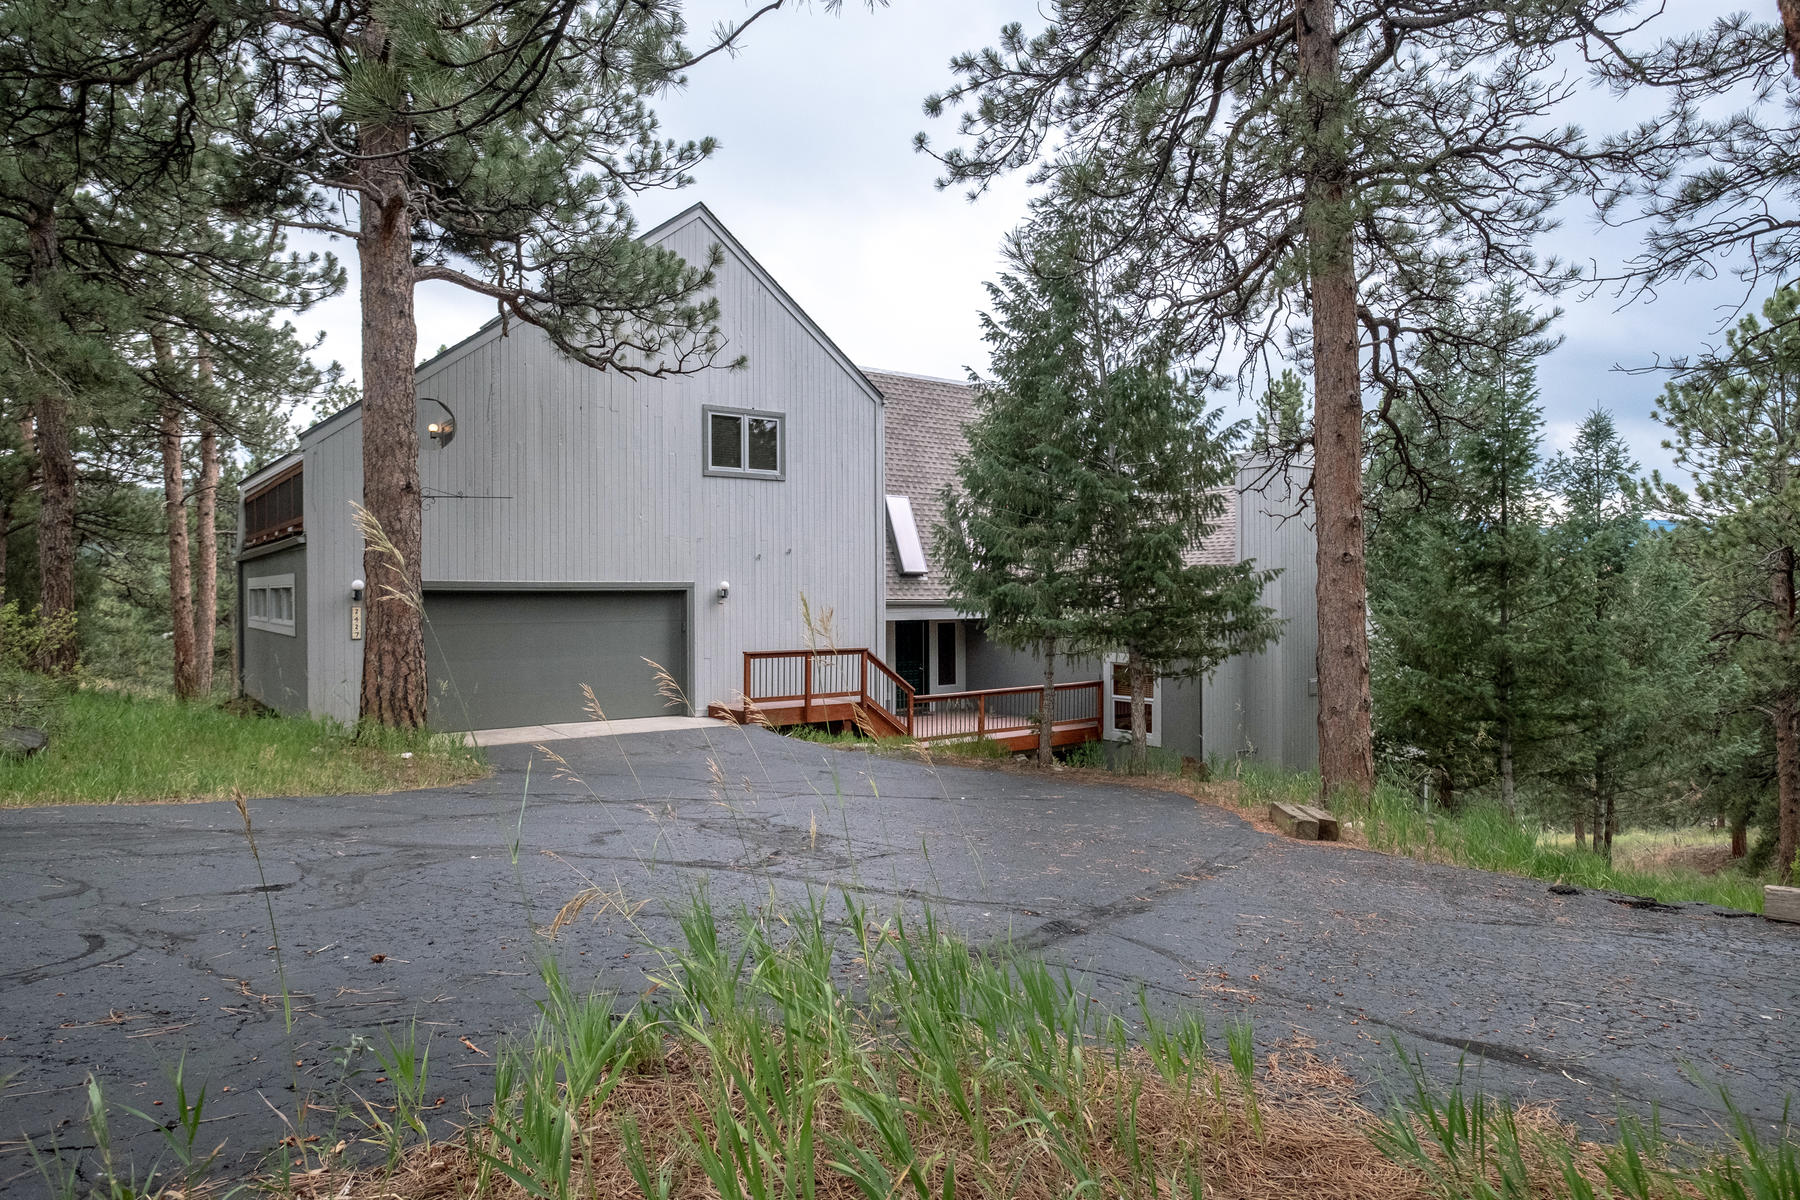 Single Family Homes for Active at Tranquility Surrounded by Nature, Views, Privacy, Quietness 2427 Daisy Lane Golden, Colorado 80401 United States